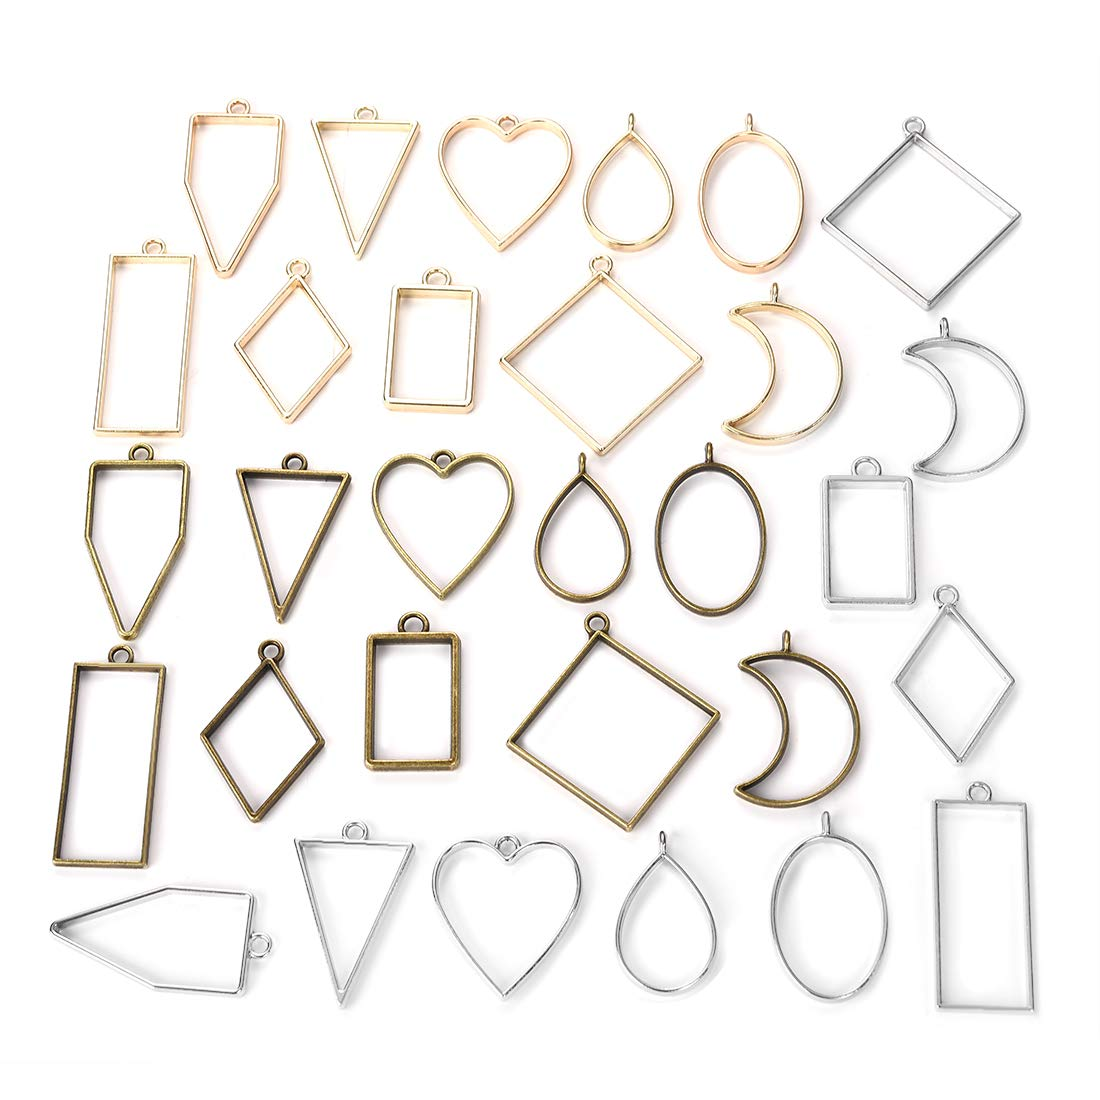 DROLE 40Pcs Open Back Bezel Pendants Assorted Geometric Hollow Frame Pendant Blanks for DIY Resin Crafts Bronze